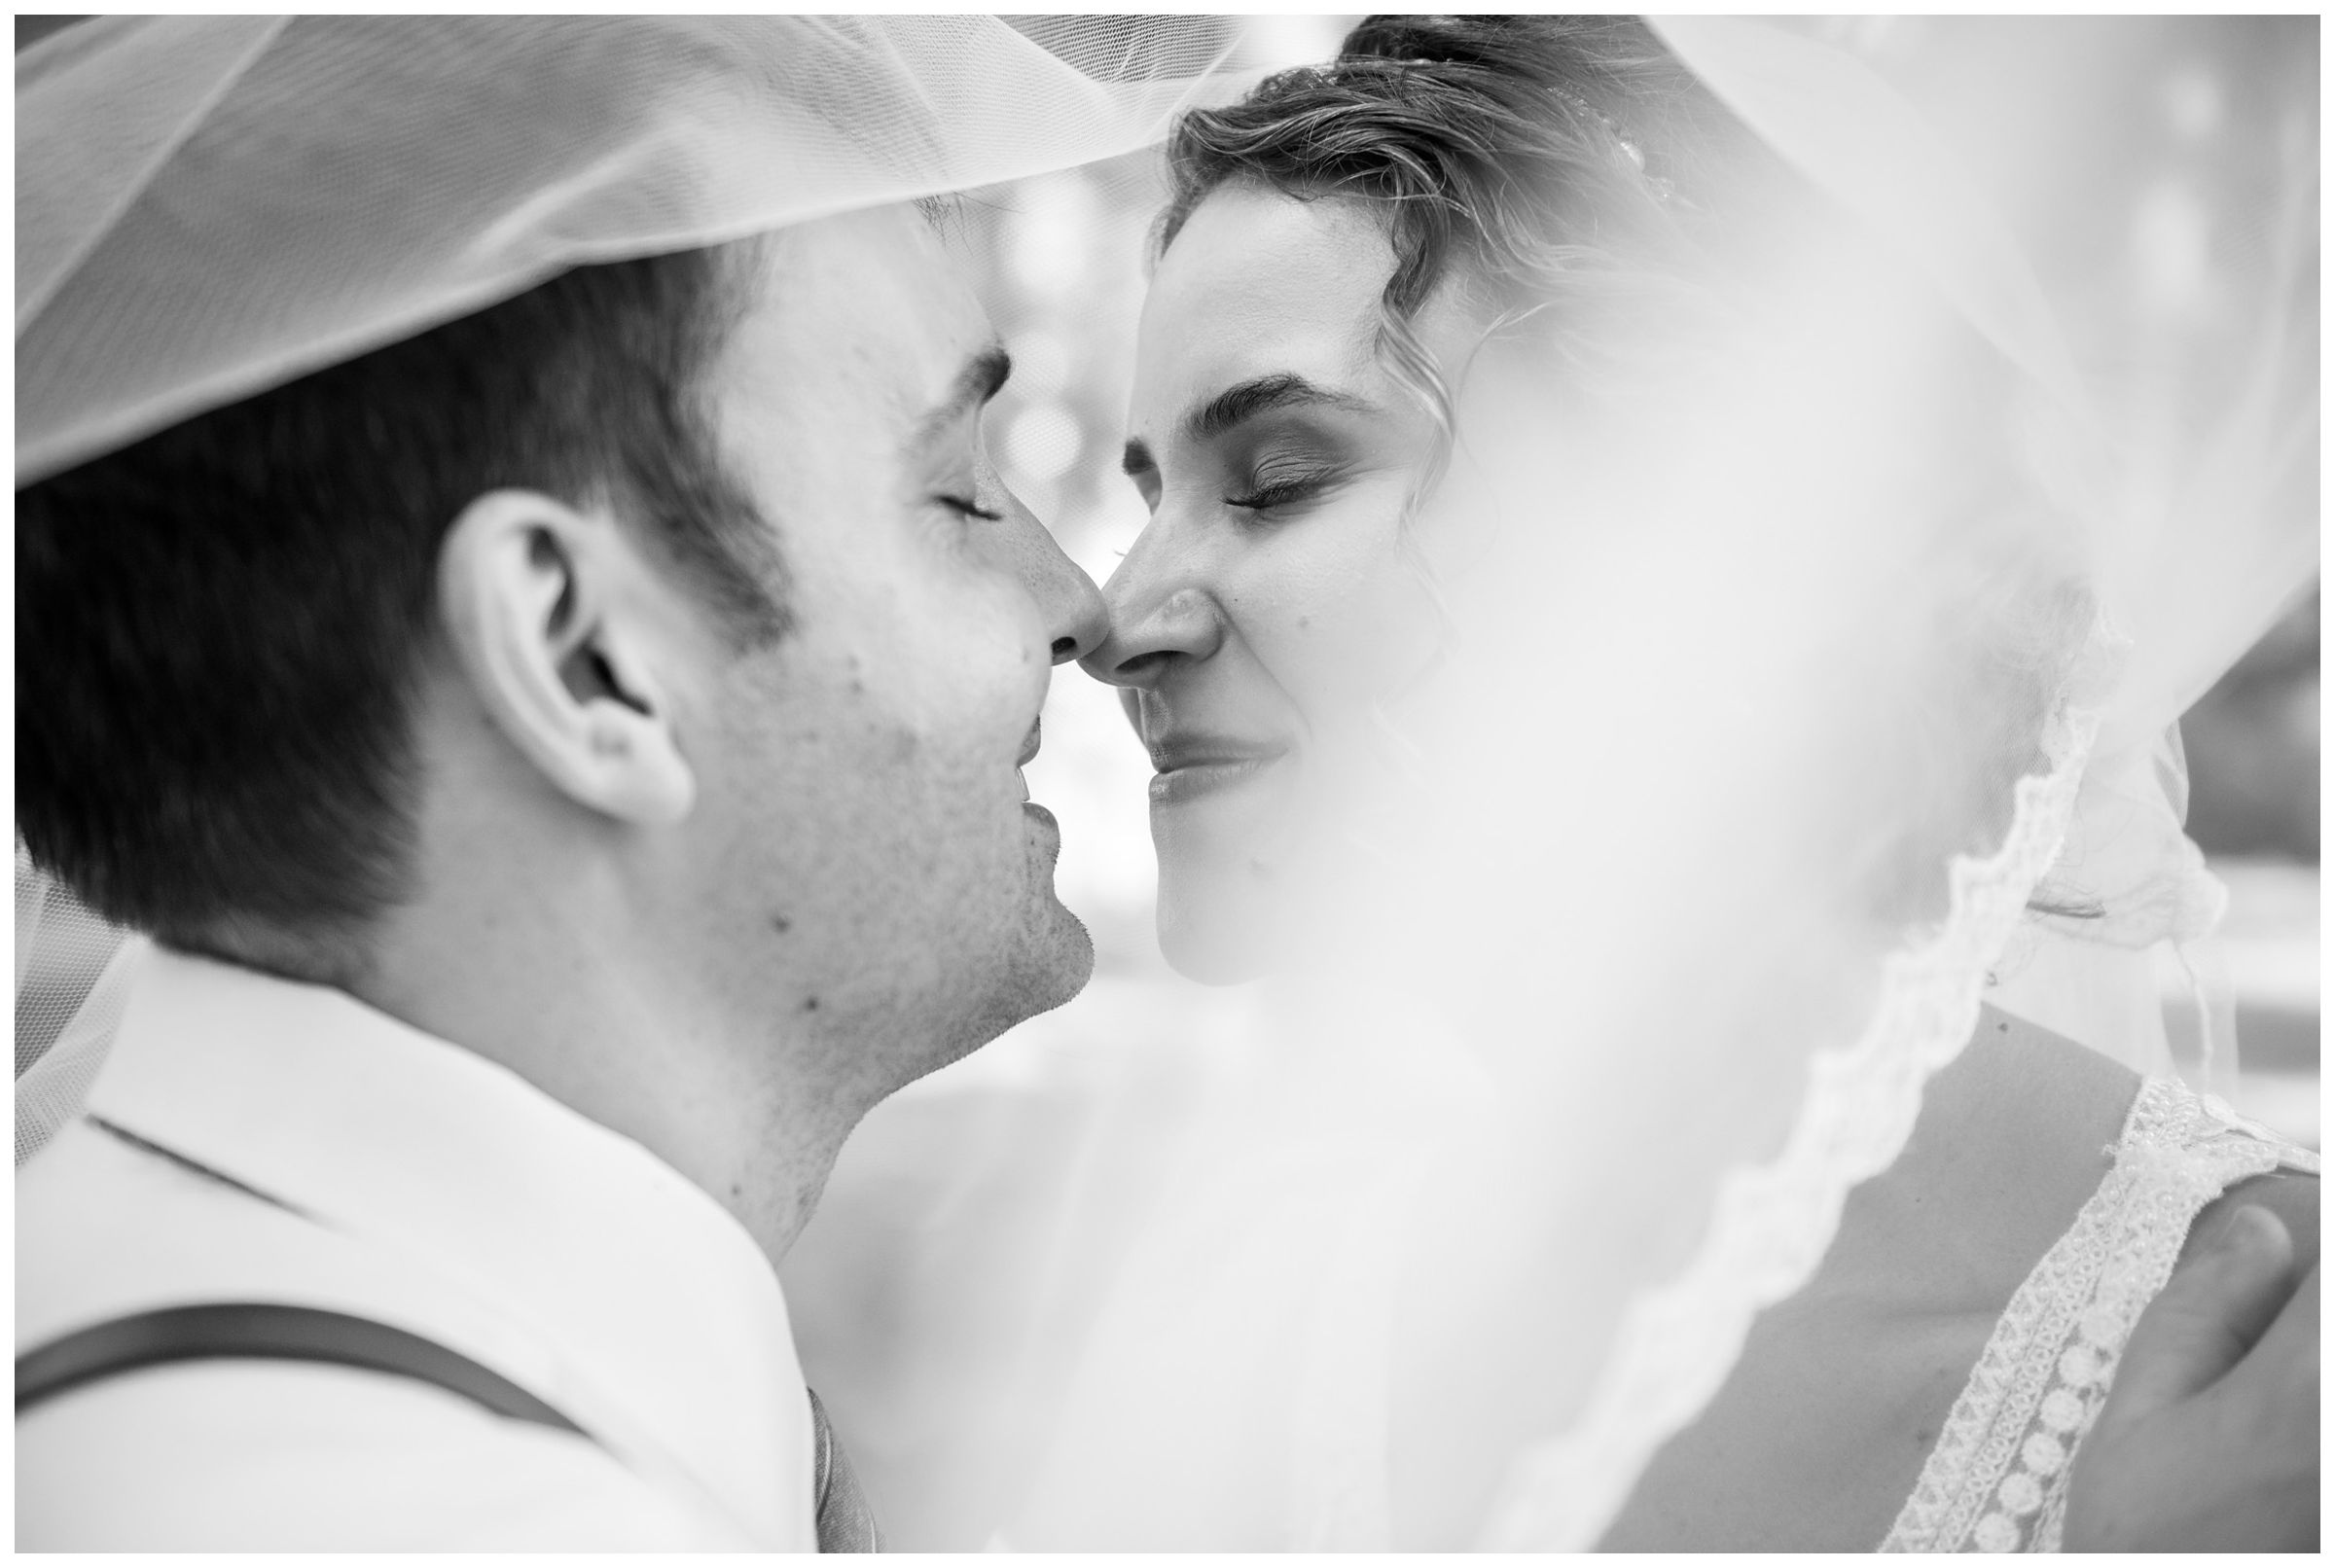 bride and groom black and white wedding photo under veil during rustic barn wedding in Lancaster, Ohio